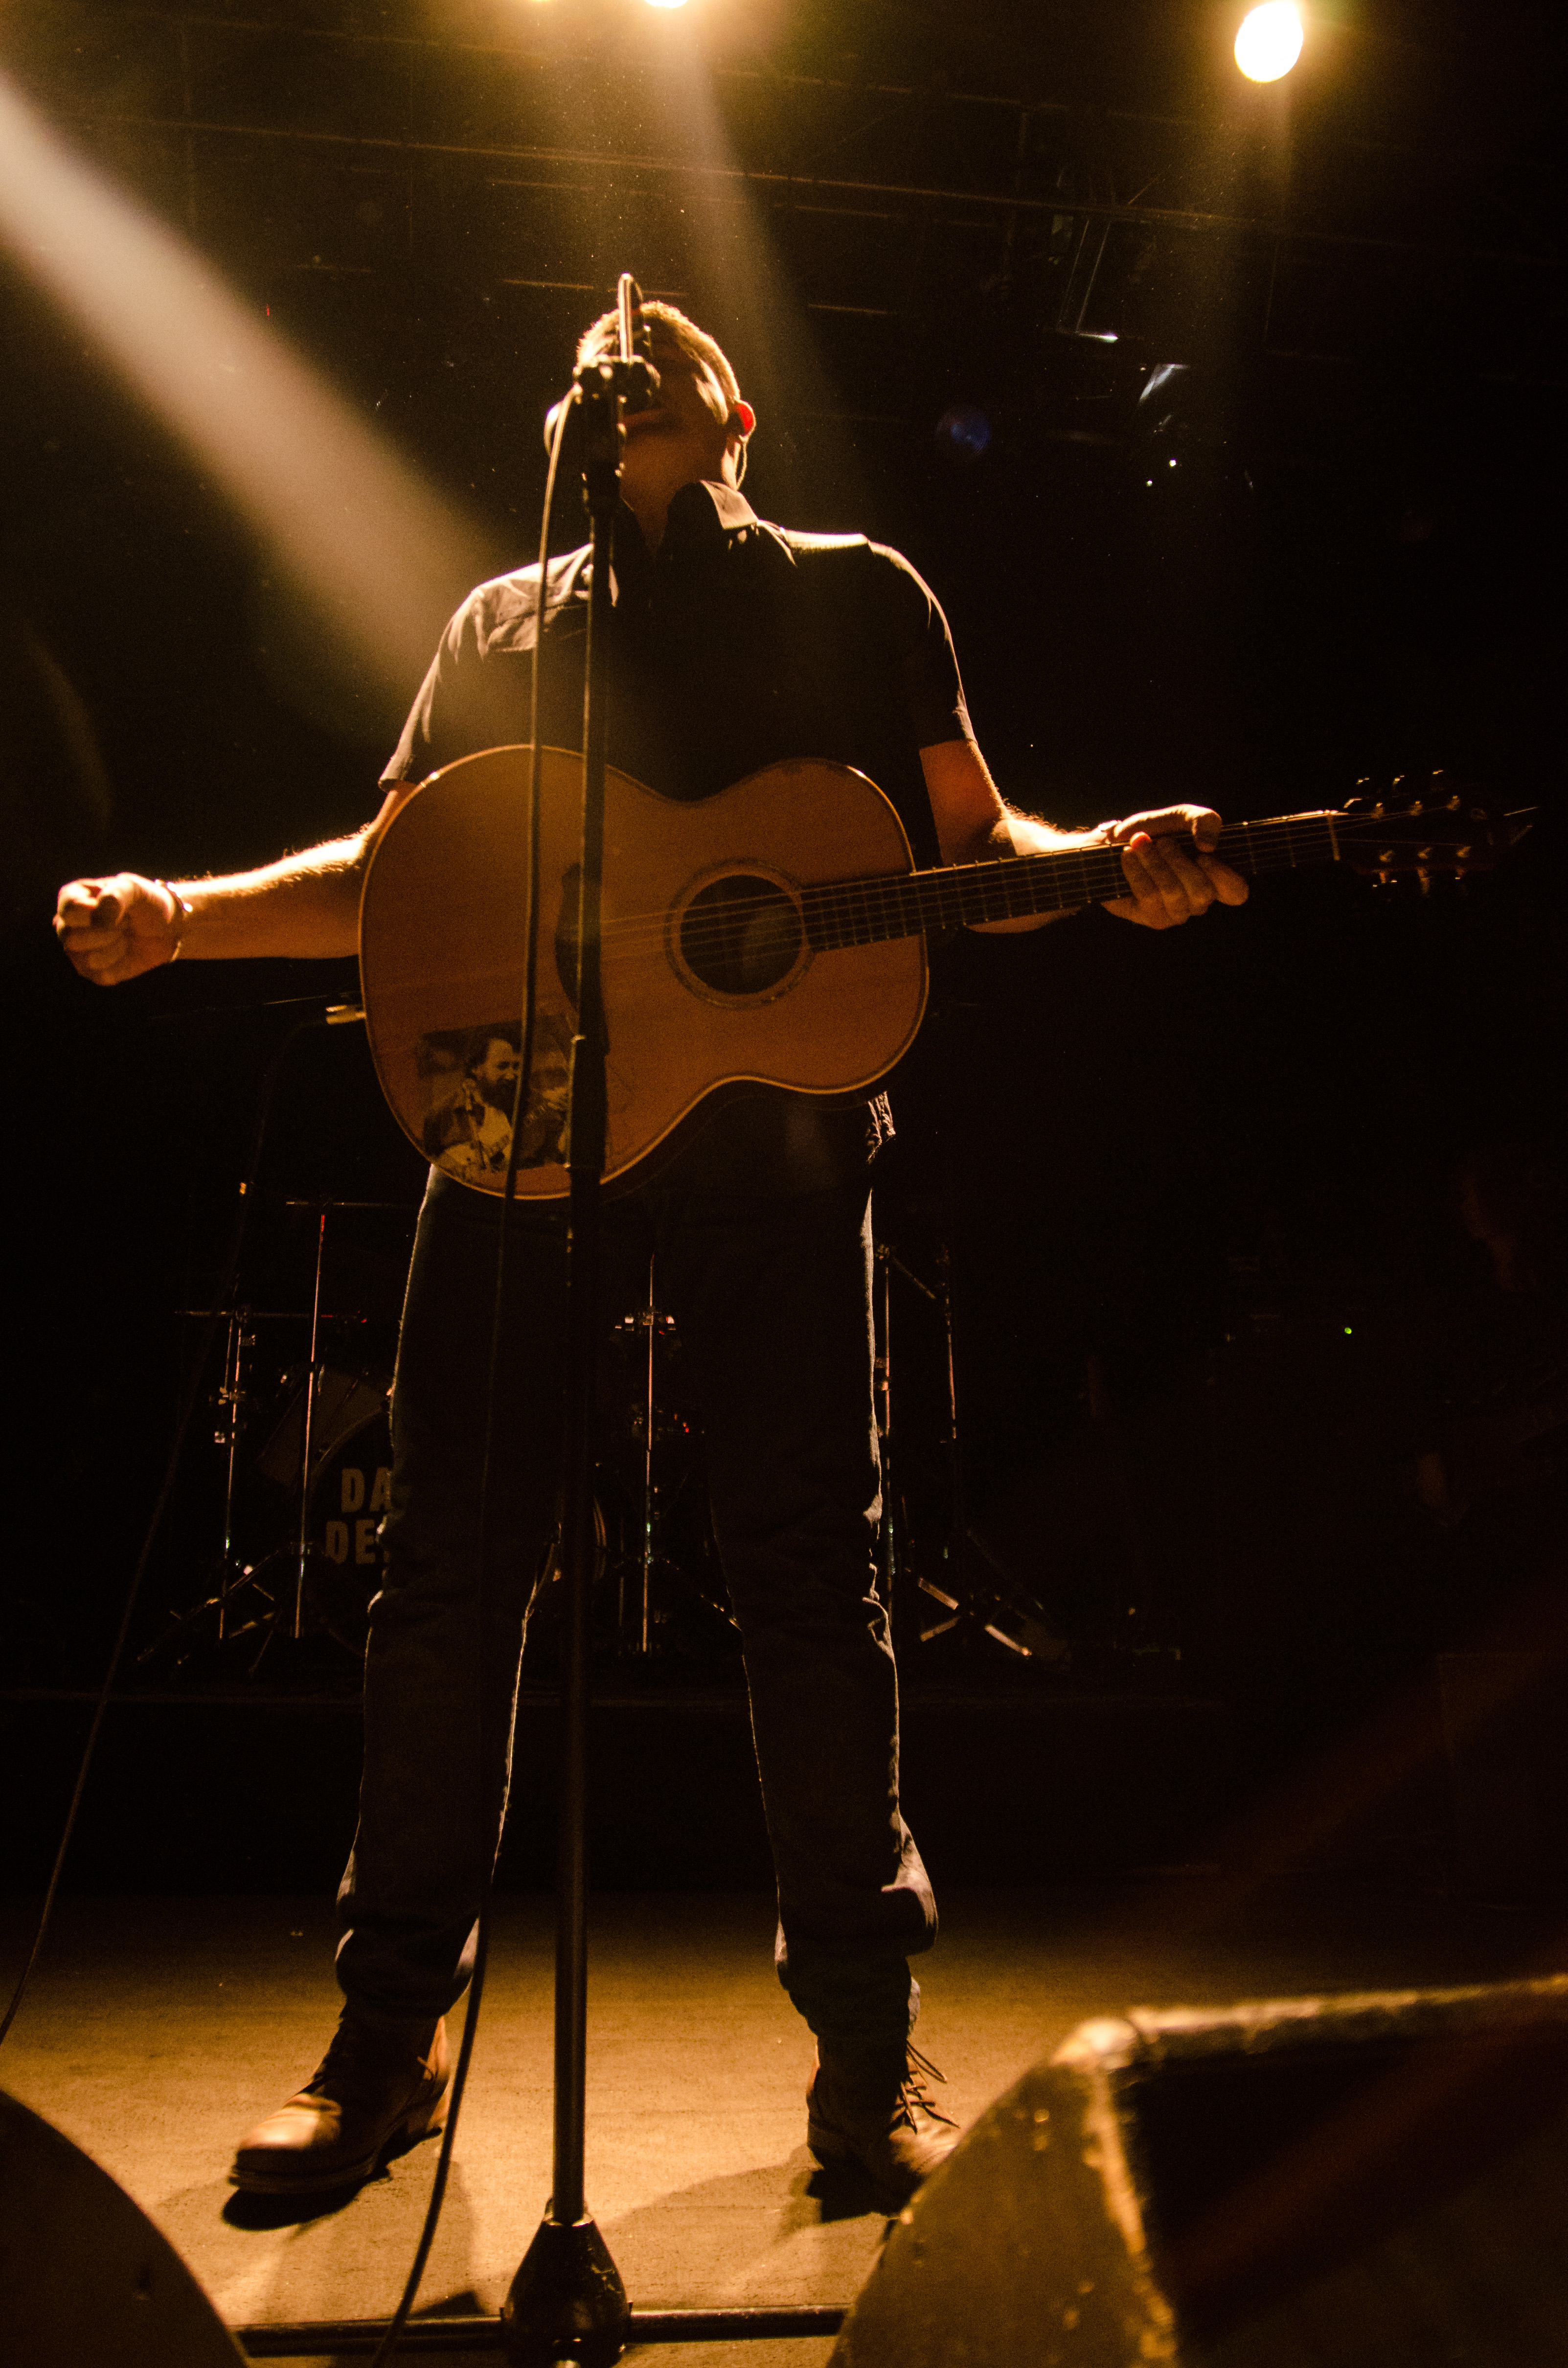 damien-dempsey-at-vicar-street-by-sean-smyth-9-12-15-3-of-34